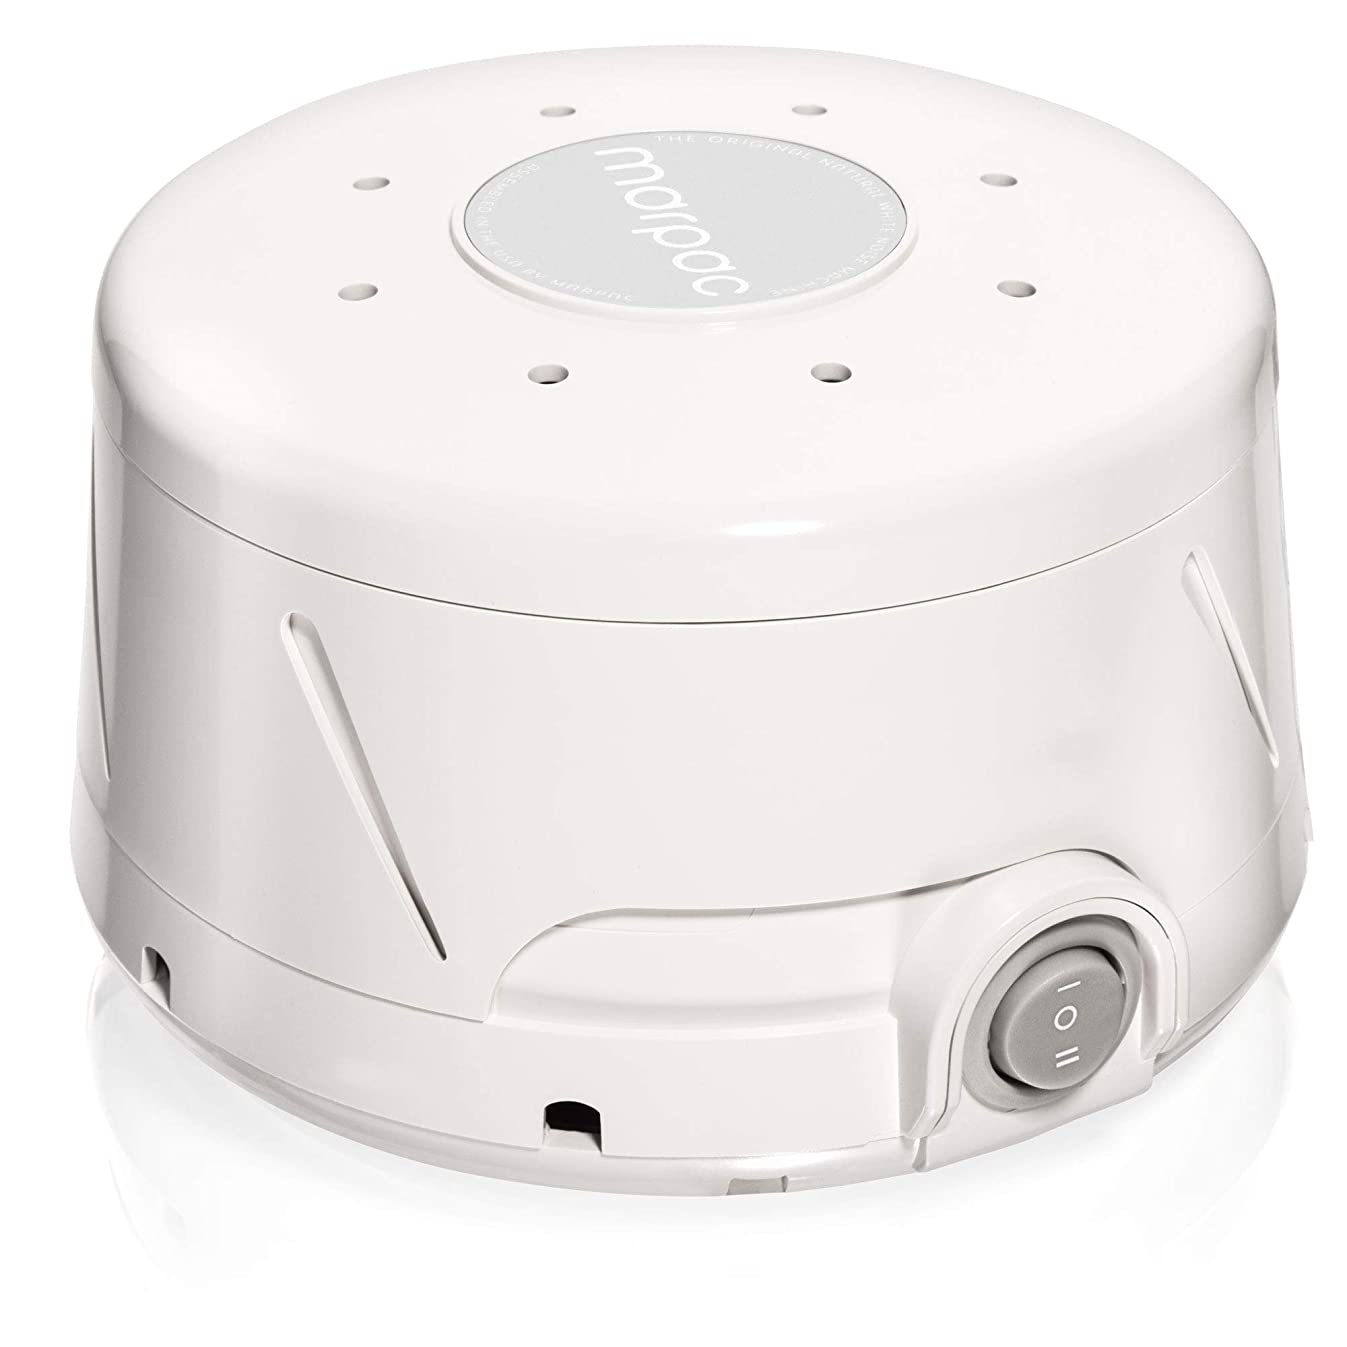 Marpac Dohm Classic (White) | White noise machine | 101 Night Trial & 1 Year Warranty | Soothing sounds from a real fan helps cancel noise while you sleep | For adults & children